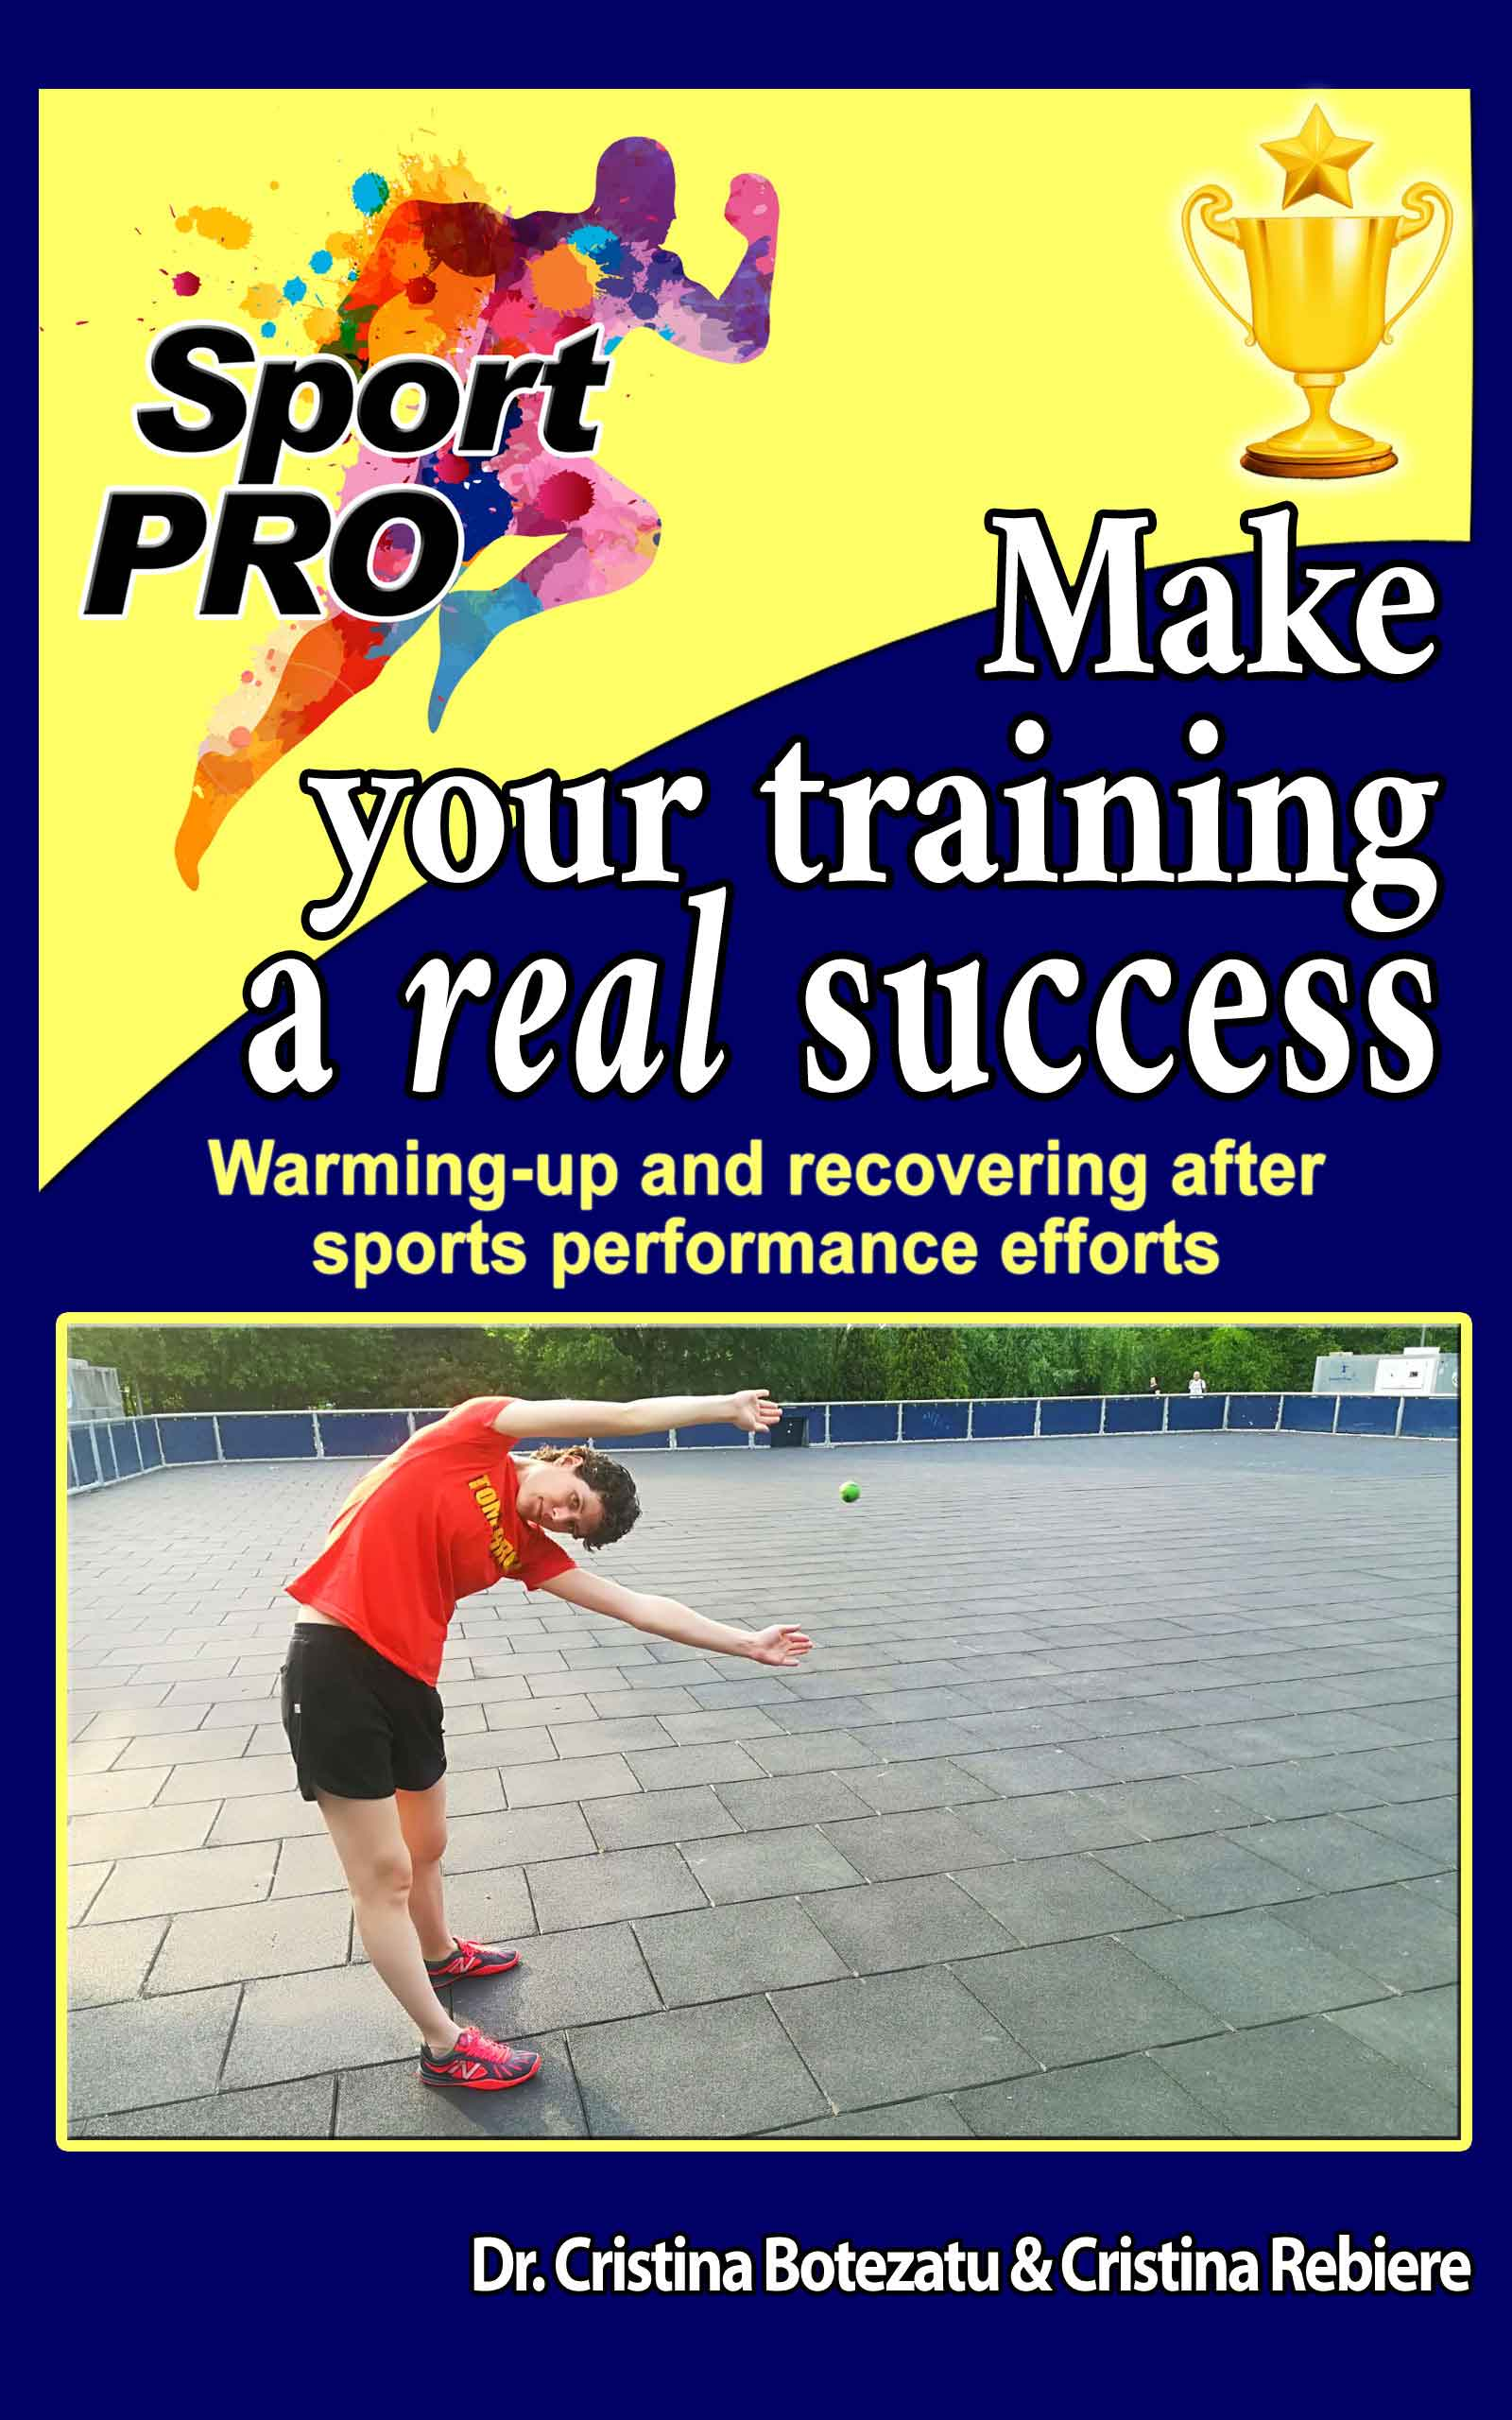 Make your training a real success - OlivierRebiere.com